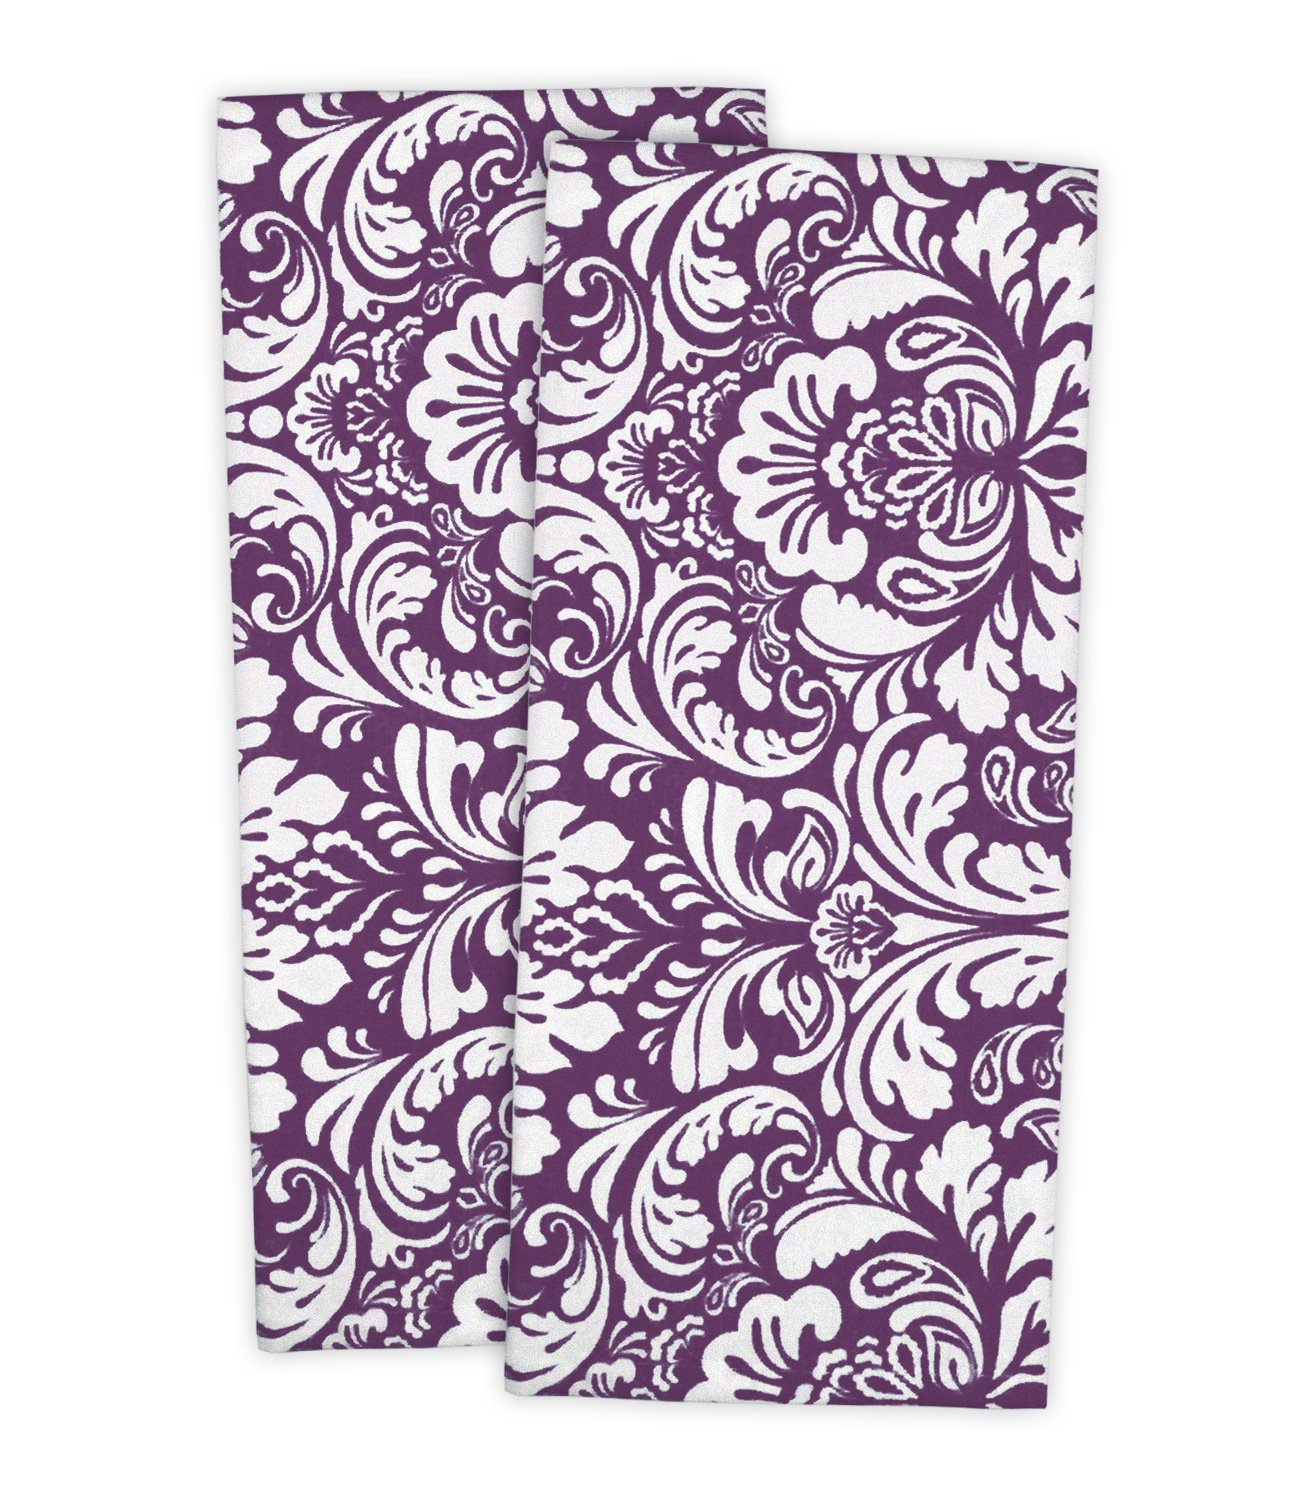 """DII Cotton Damask Kitchen Dish Towels, 28 x 18"""" Set of 2, Low Lint Decorative Tea Towel for Everyday Cooking and Baking-Eggplant"""